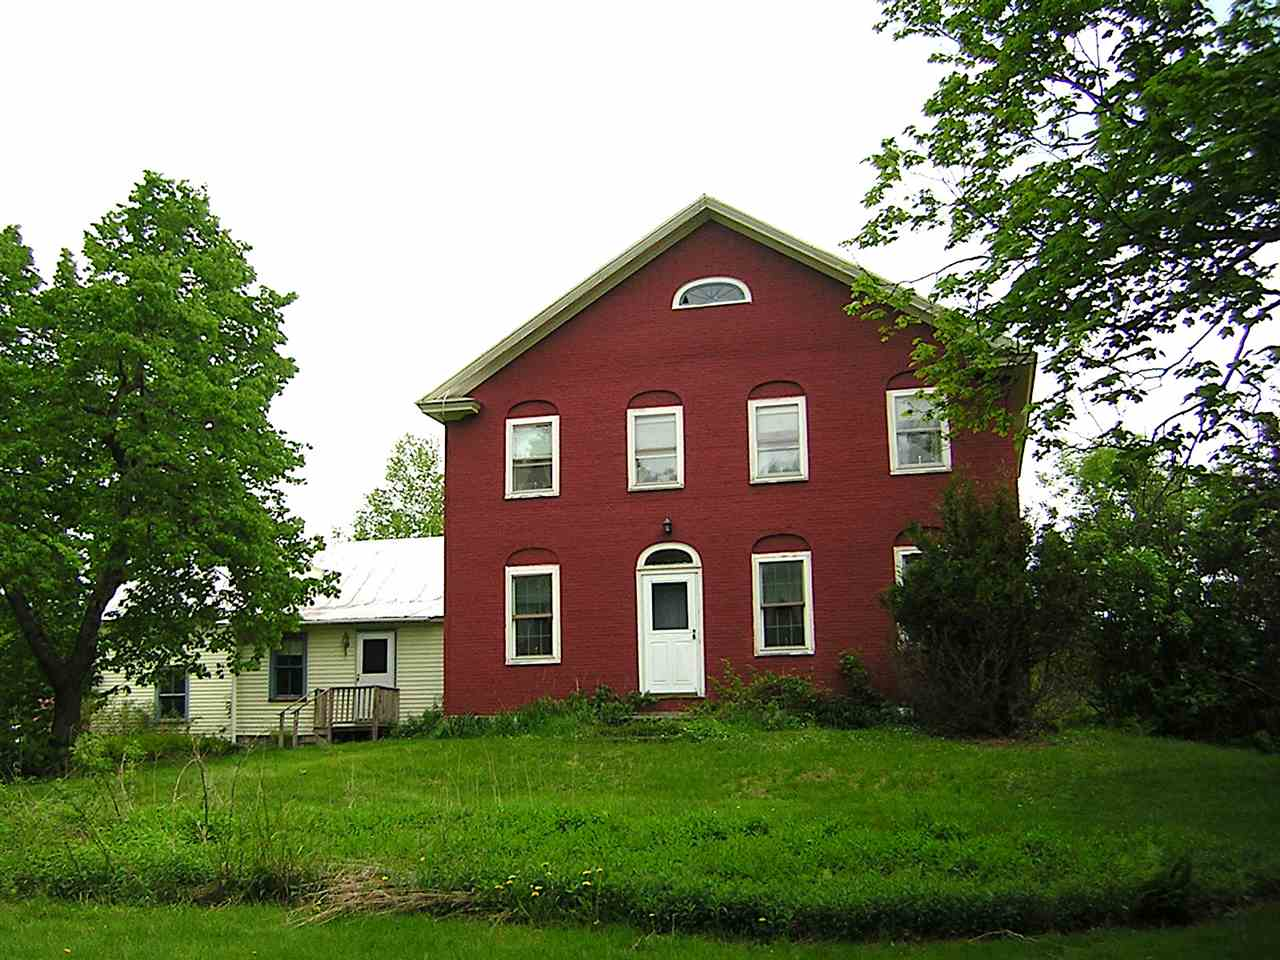 "The 1829 House is an original 1829 brick farm house and barn with spectacular river and mountain views. The farm house has 4 bedrooms upstairs and 2 baths and has been rented until recently. Custom moulding and trim with built ins. Hardwood floors on the first floor with painted wide pine upstairs. Lamoille River views in the foreground with mountain views in the background. Beautiful period fireplace surround and mantel in living room. East access to the Rail Trail and Rt 15 by Right of Way and  the property is set back from Rt 15. This house presents a great restoration opportunity of a seldom found antique brick farm house.  In addition there is a large barn in exceptional condition that has been used as a retail antique center called ""Rewind Time to 1829"".   The 3- level barn was constructed in 1900 and measures 46' x 100'.   The barn has been used as a commercial retail showplace and store.  The barn is wired, partially heated and is in very good condition.   Spectacular river and mountain views from the house, barn and around the 2 acre property.  This property is a must see for anyone looking for an original antique to call their own.  The future of the 1829 House could be a lot of things including retail, residential, wedding venue, or a Rail Trail Bike Destination."